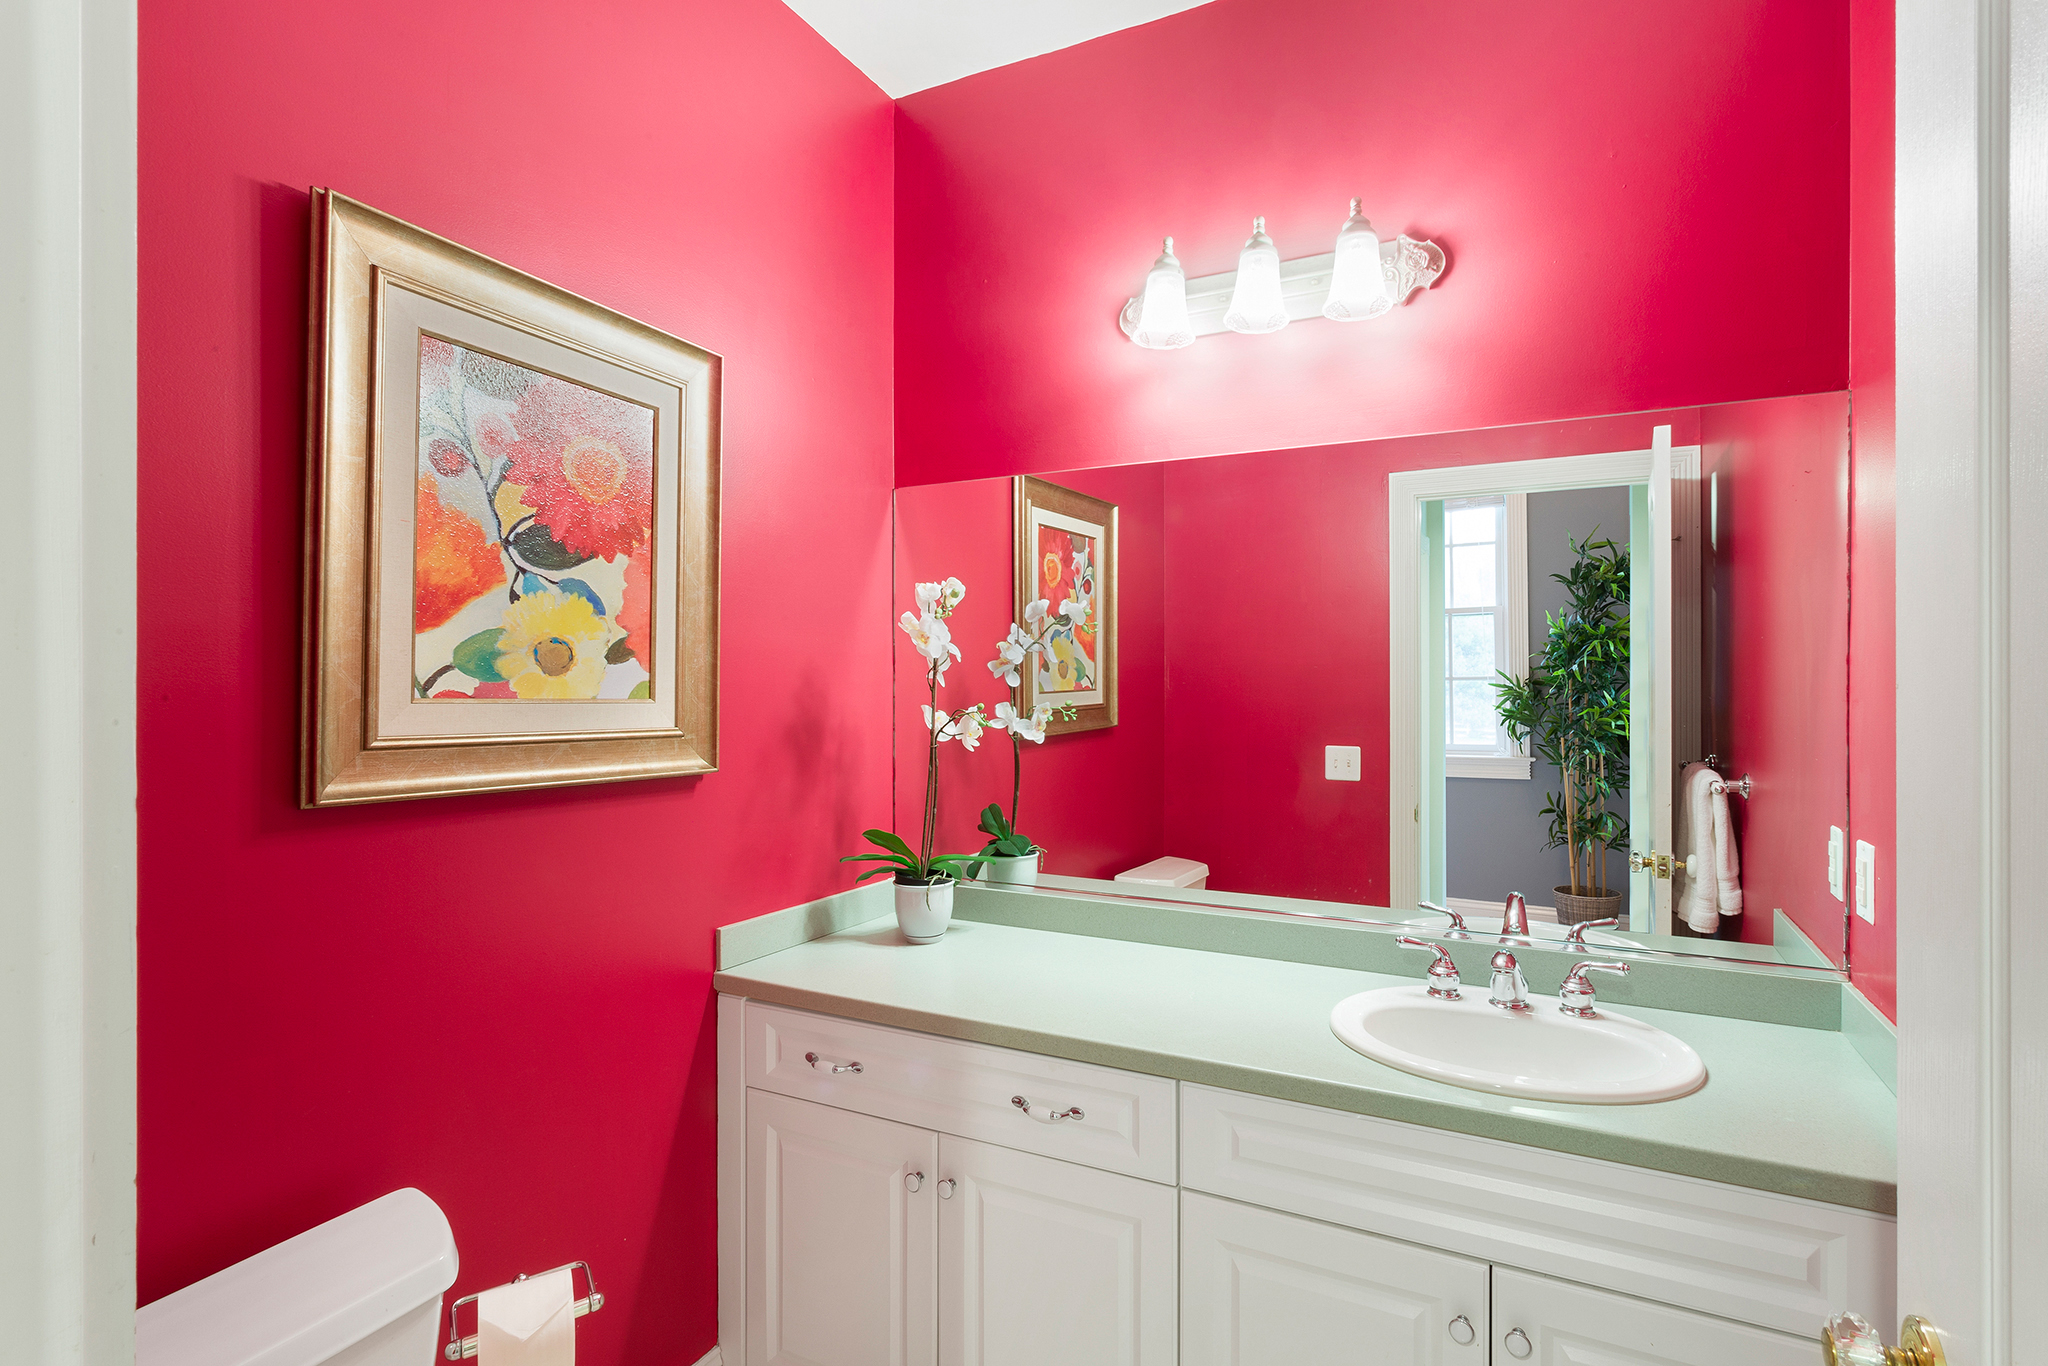 14a 98 Fairmount Road West Tewksbury Township — powder room 1